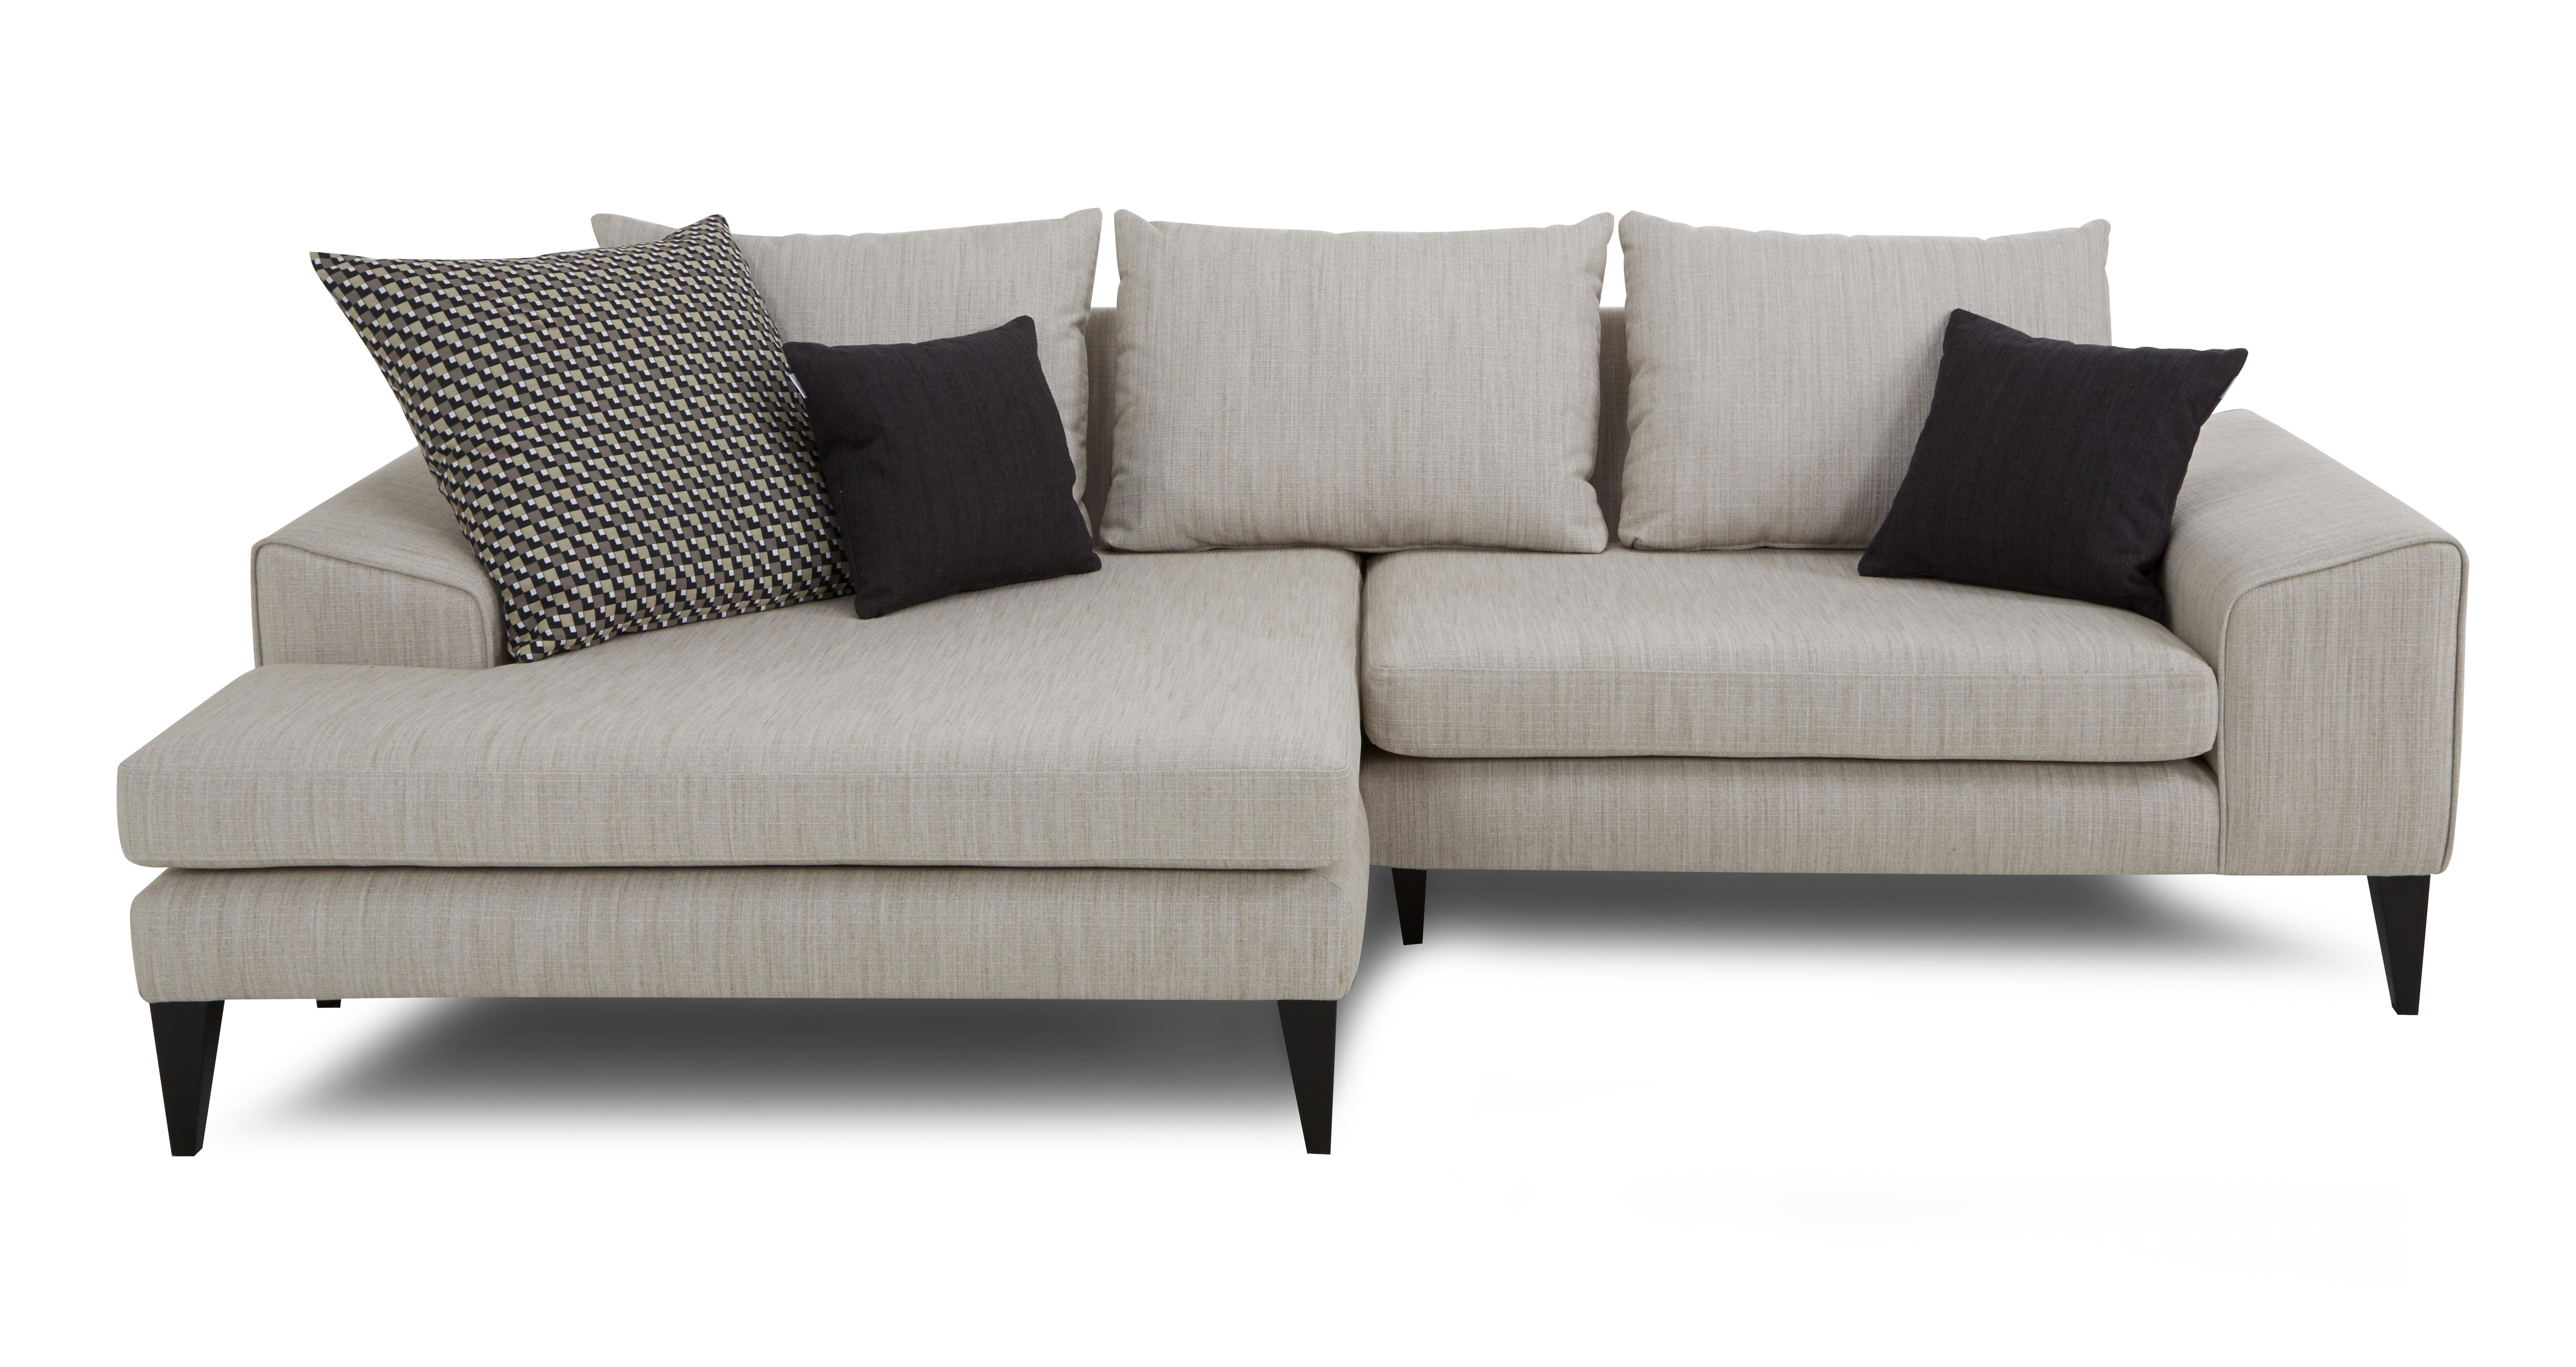 Most Current Grey Chaise Sofas Within Sofa : Grey Chaise Sofa Darcy Graygreyunge Light Sectional With (View 10 of 15)